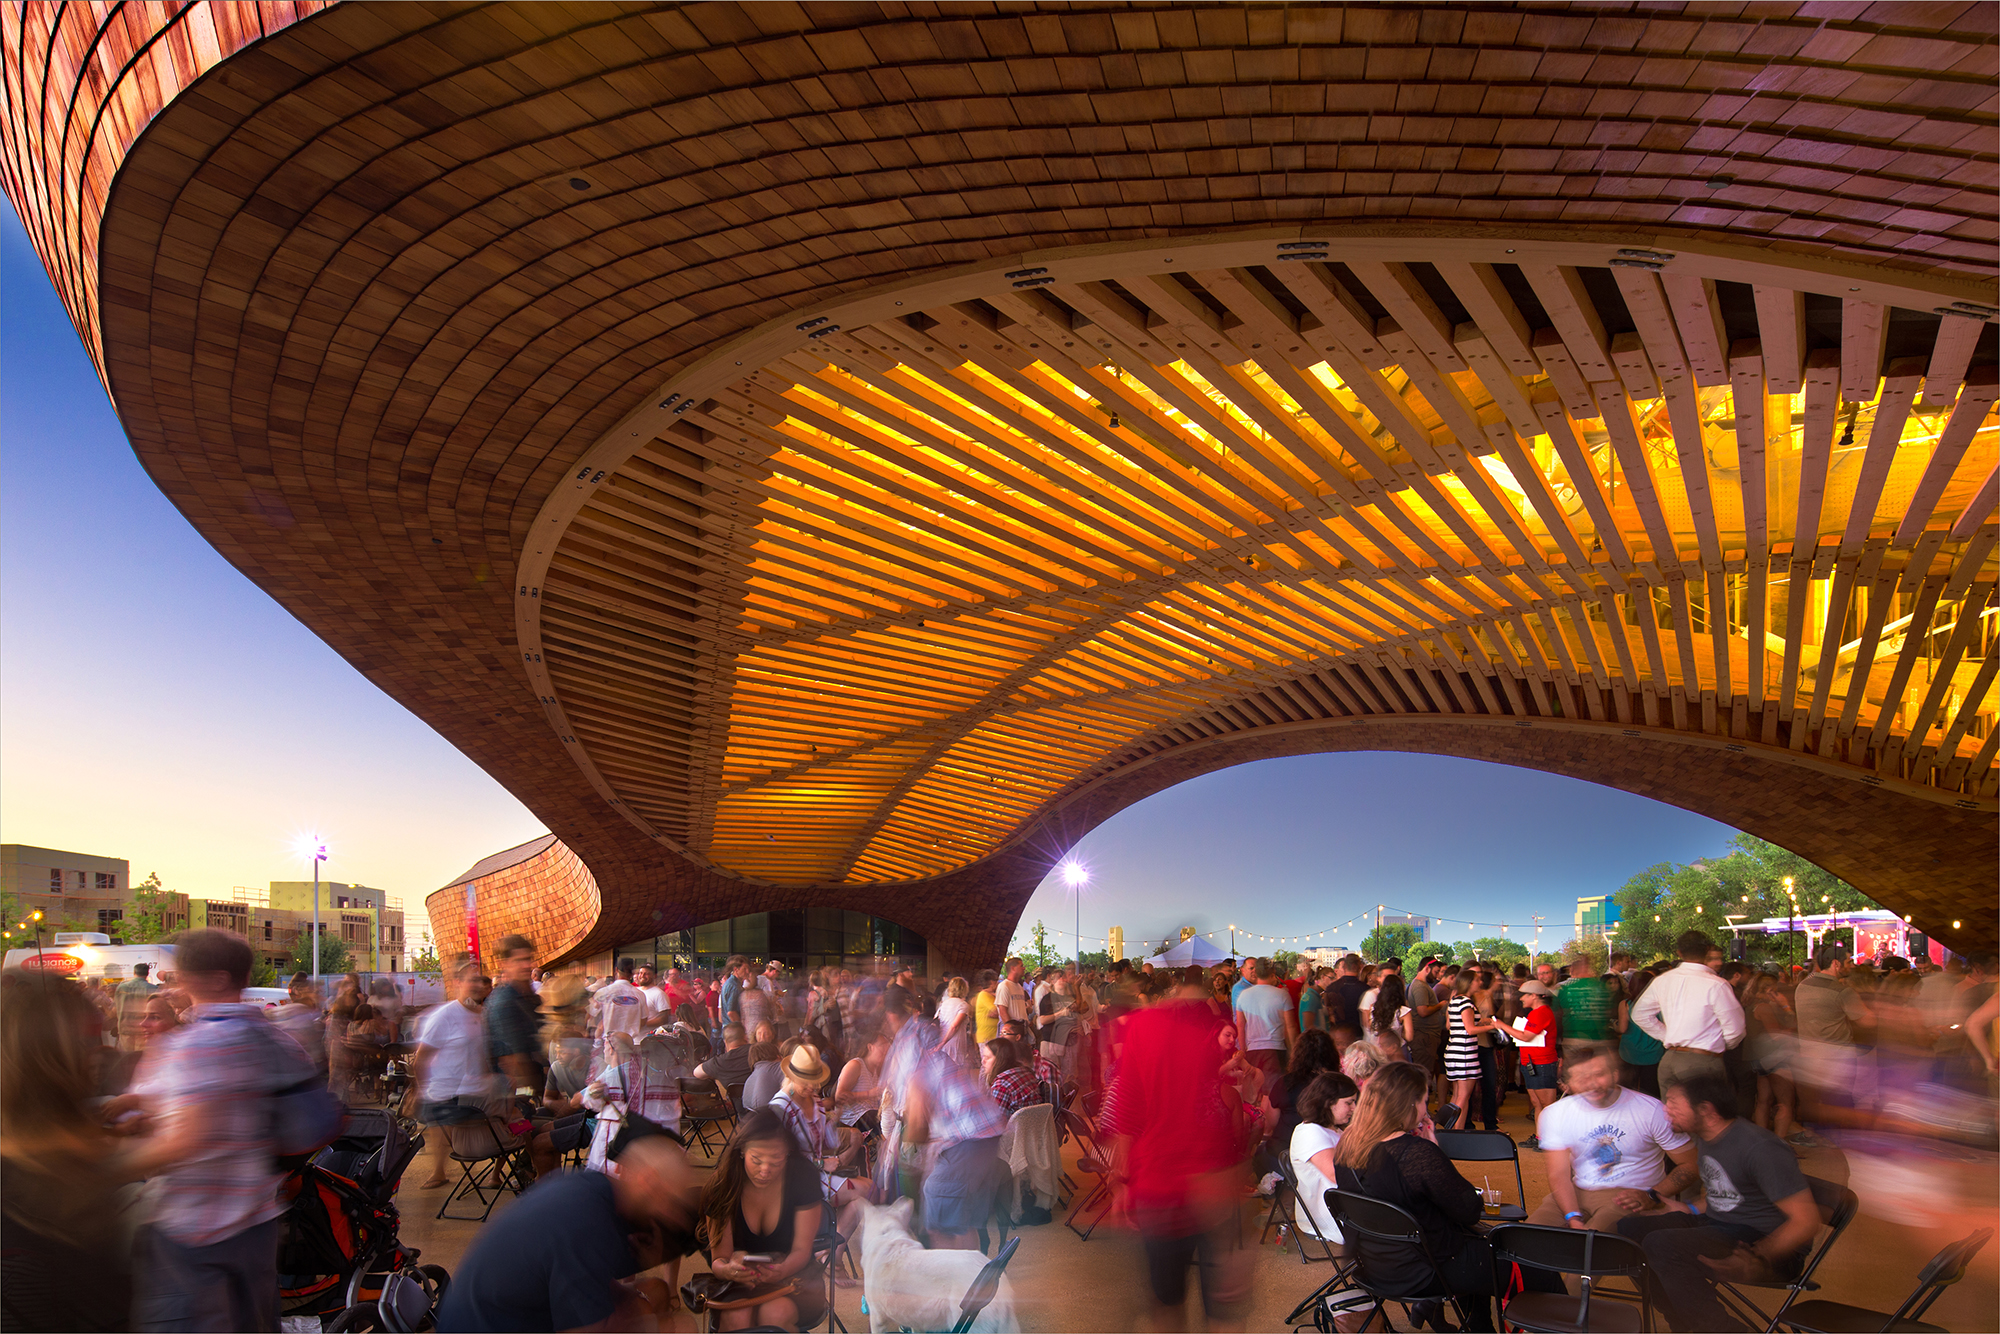 The Barn S Soaring Timber Superstructure Architect Magazine